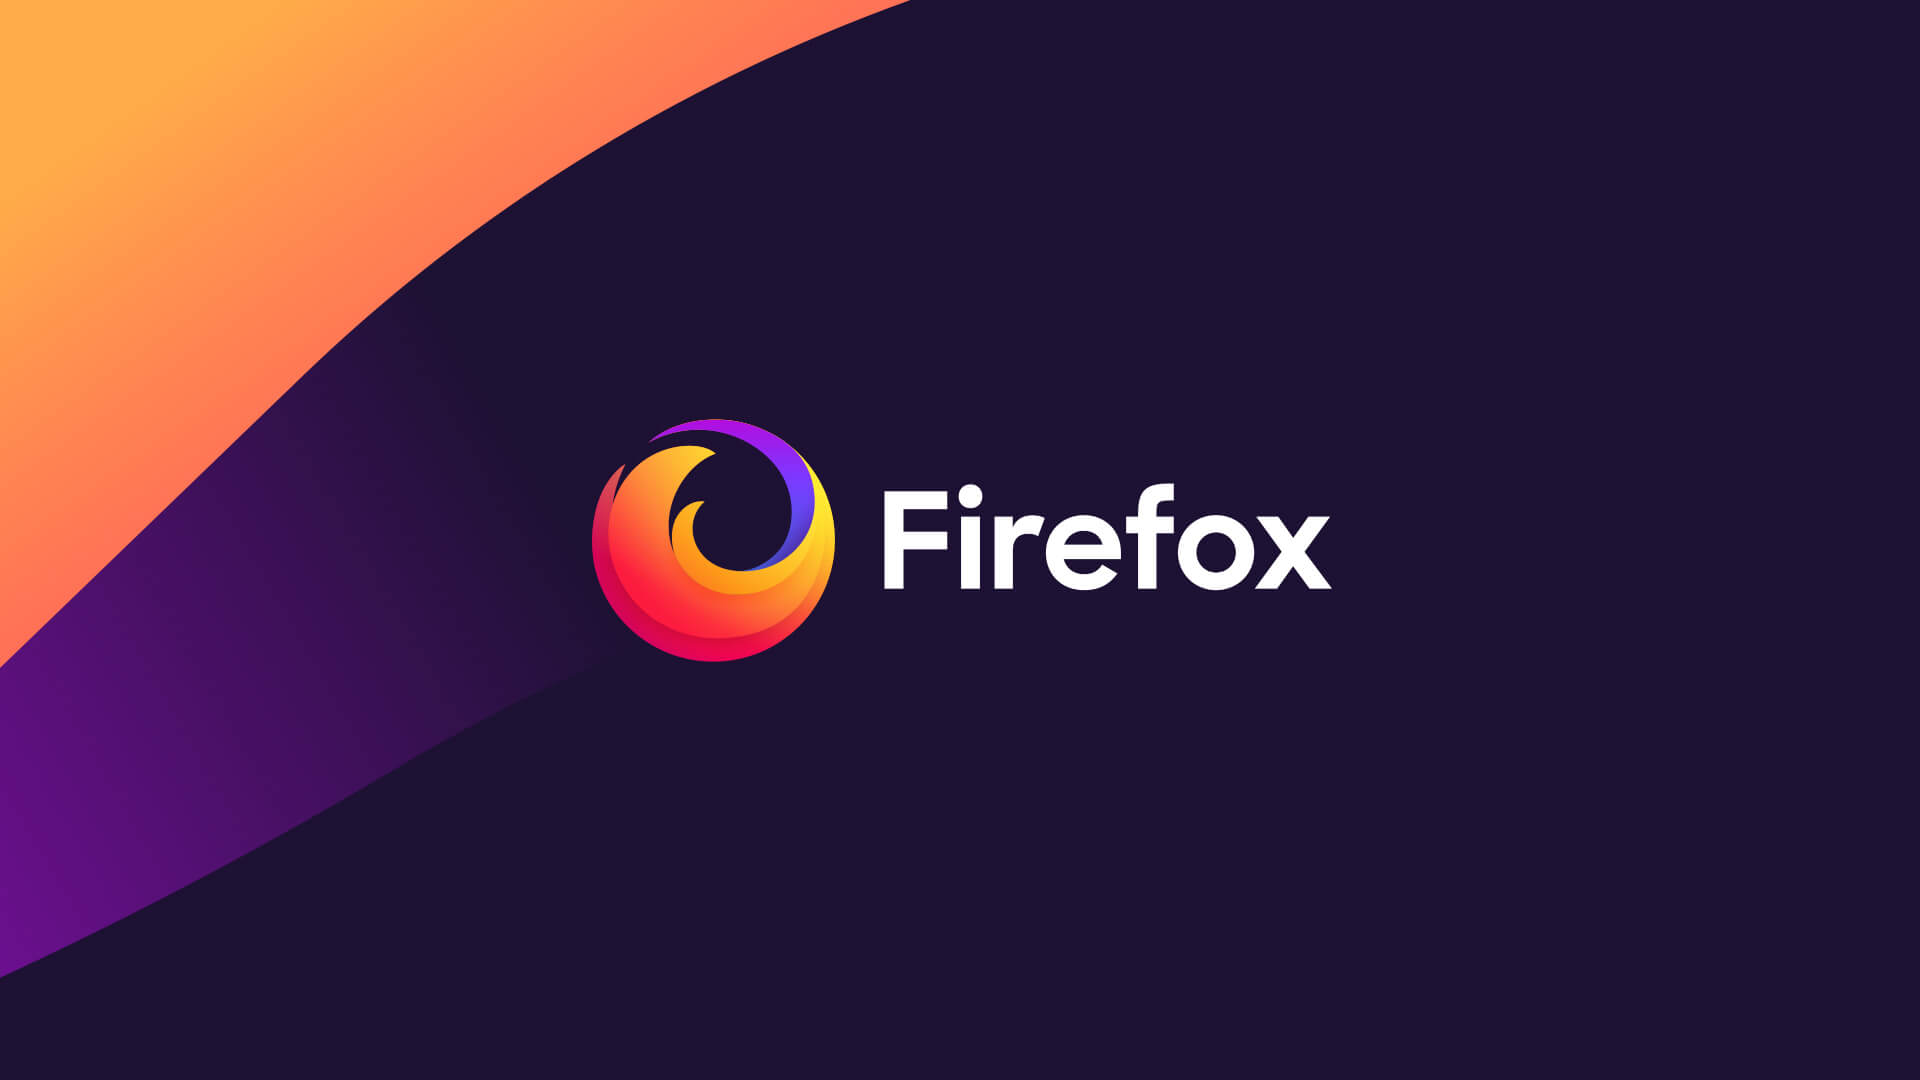 Firefox starts test among users with Bing as default search engine